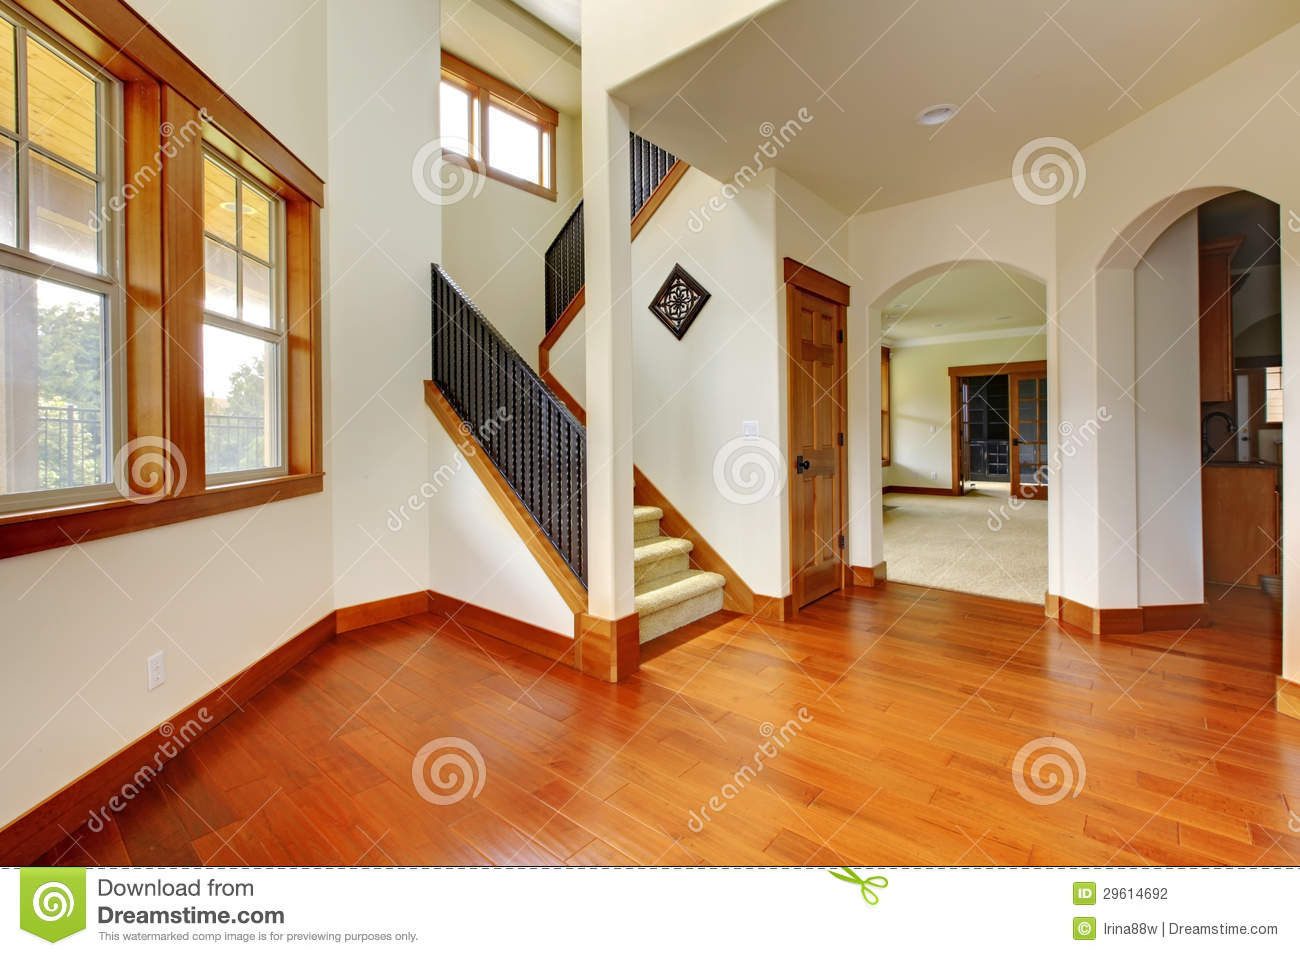 Beautiful home entrance with wood floor new luxury home interior stock photo image 29614692 for Interieur maison de luxe